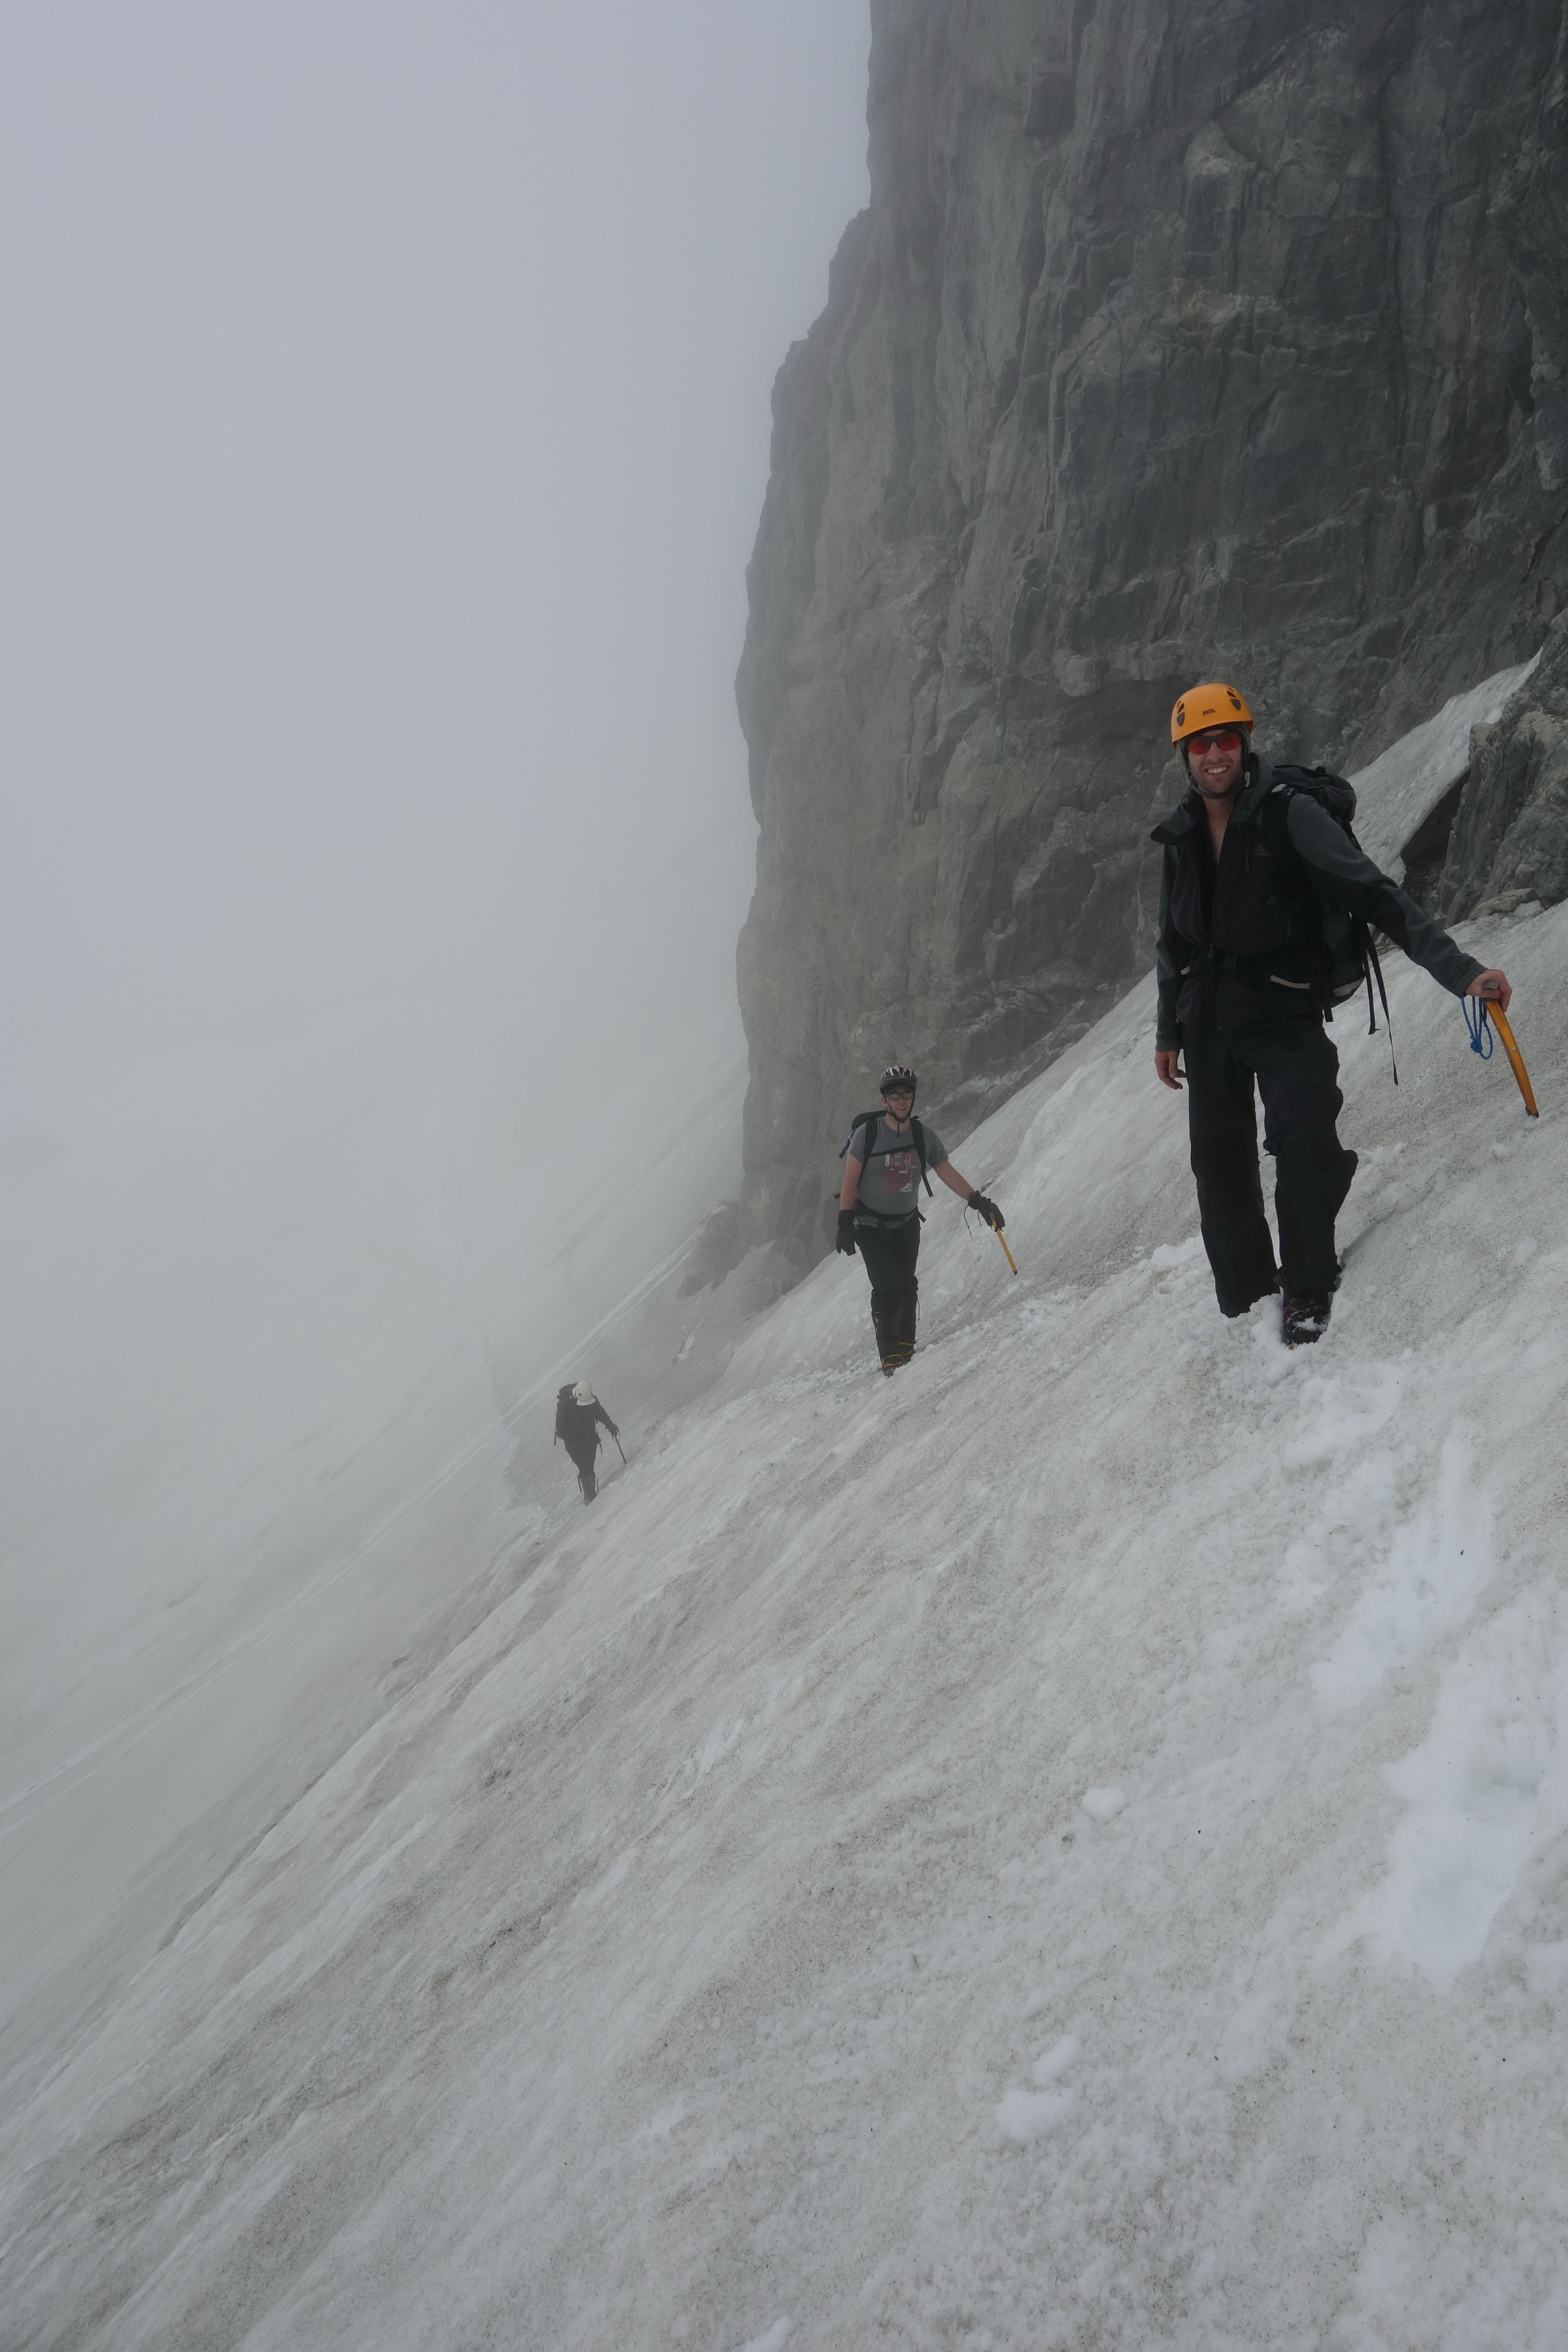 Mikey, Kenneth, and Jeremy crossing the snow (Ball Pass Dec 2013)